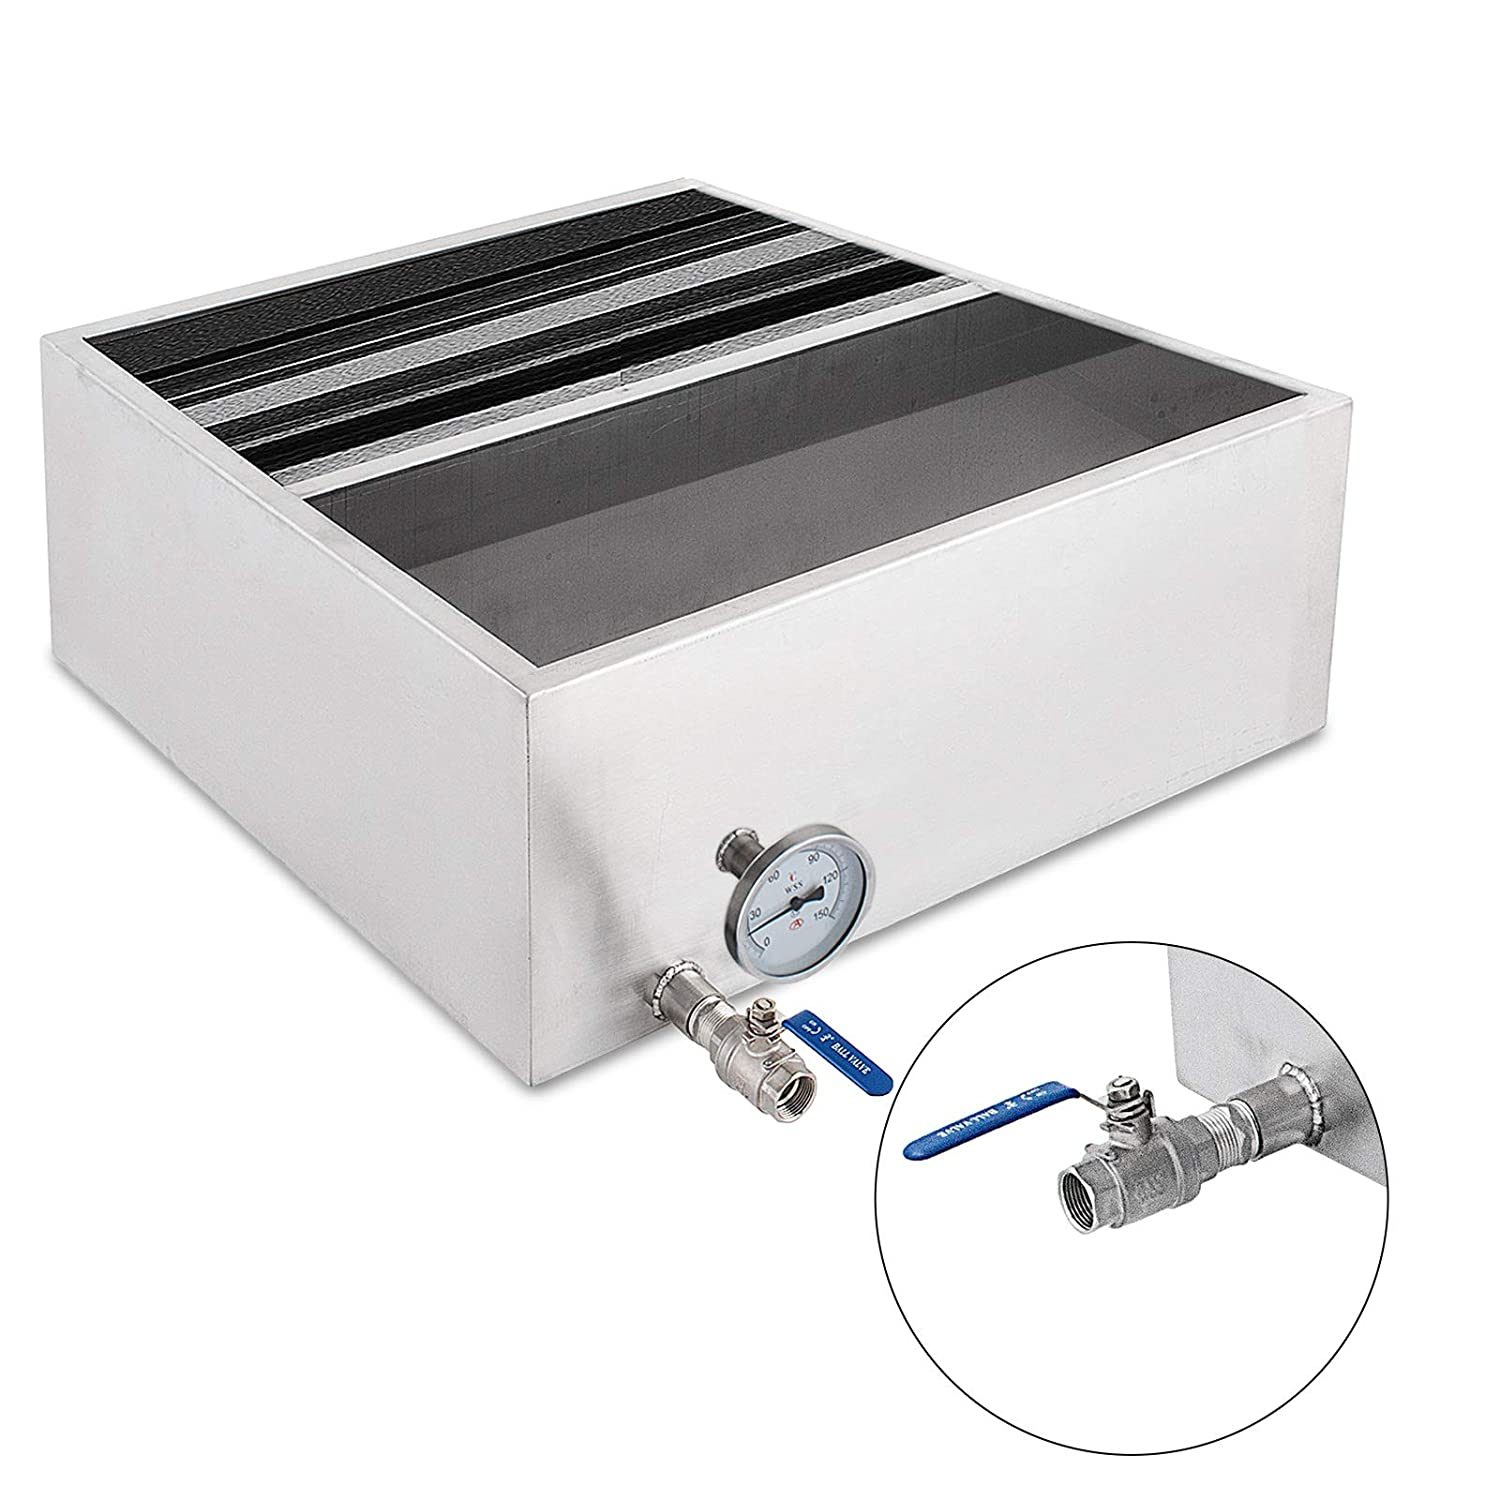 VEVOR Maple Syrup Evaporator Pan Maple Syrup Boiling Pan Stainless Steel Square Pan for Boiling Syrup (Normal, 16